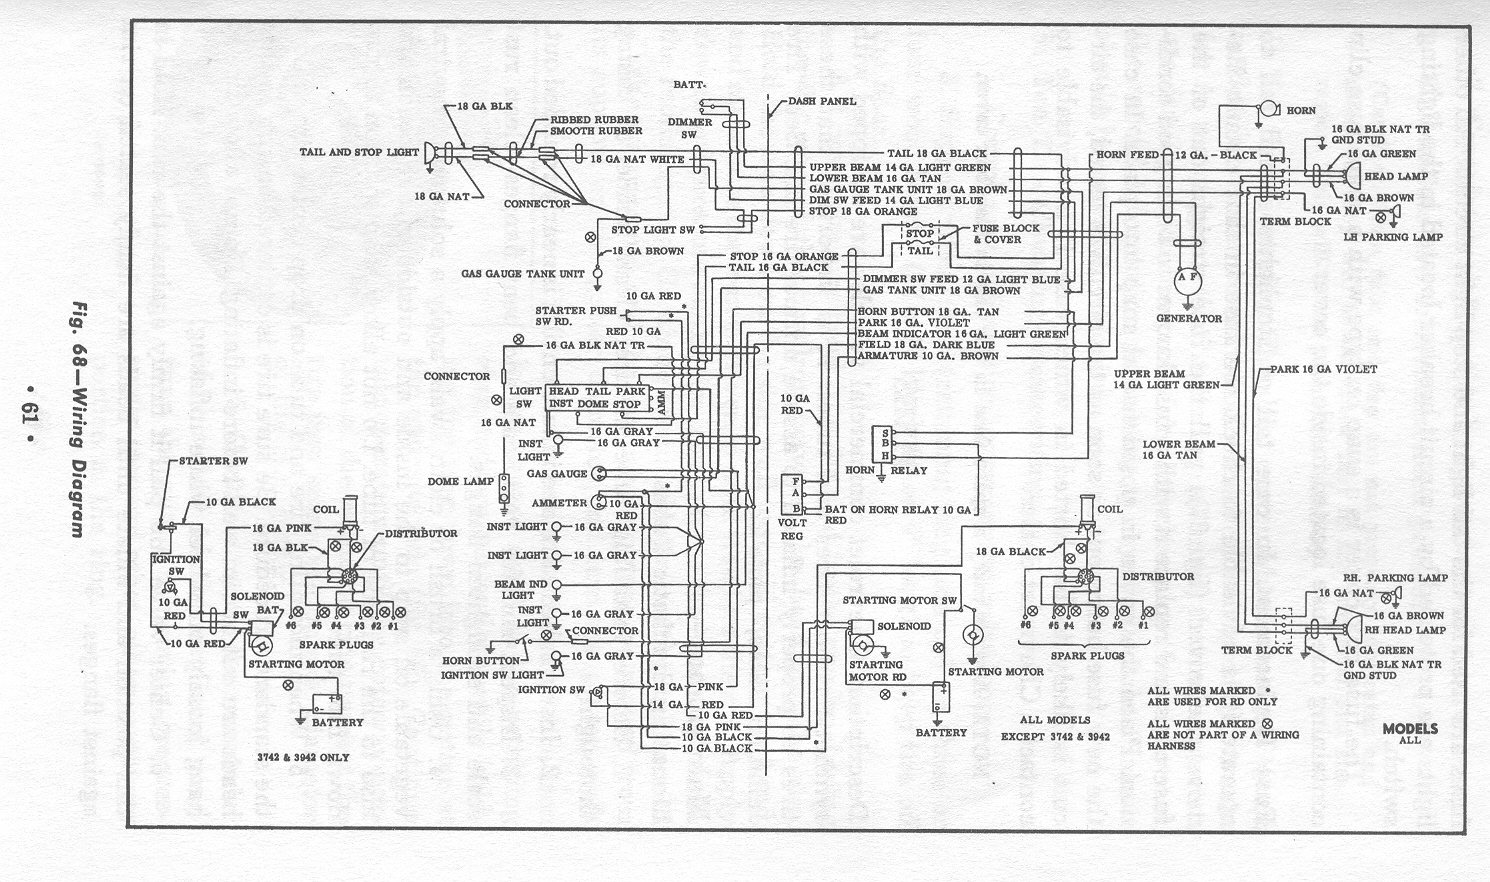 ... chevy truck 1965 c10 operatoru0027s manual index 1965 chevy c10 wiring diagram 1965 Chevy C10 Wiring  sc 1 st  MiFinder : 1974 chevy truck wiring diagram - yogabreezes.com